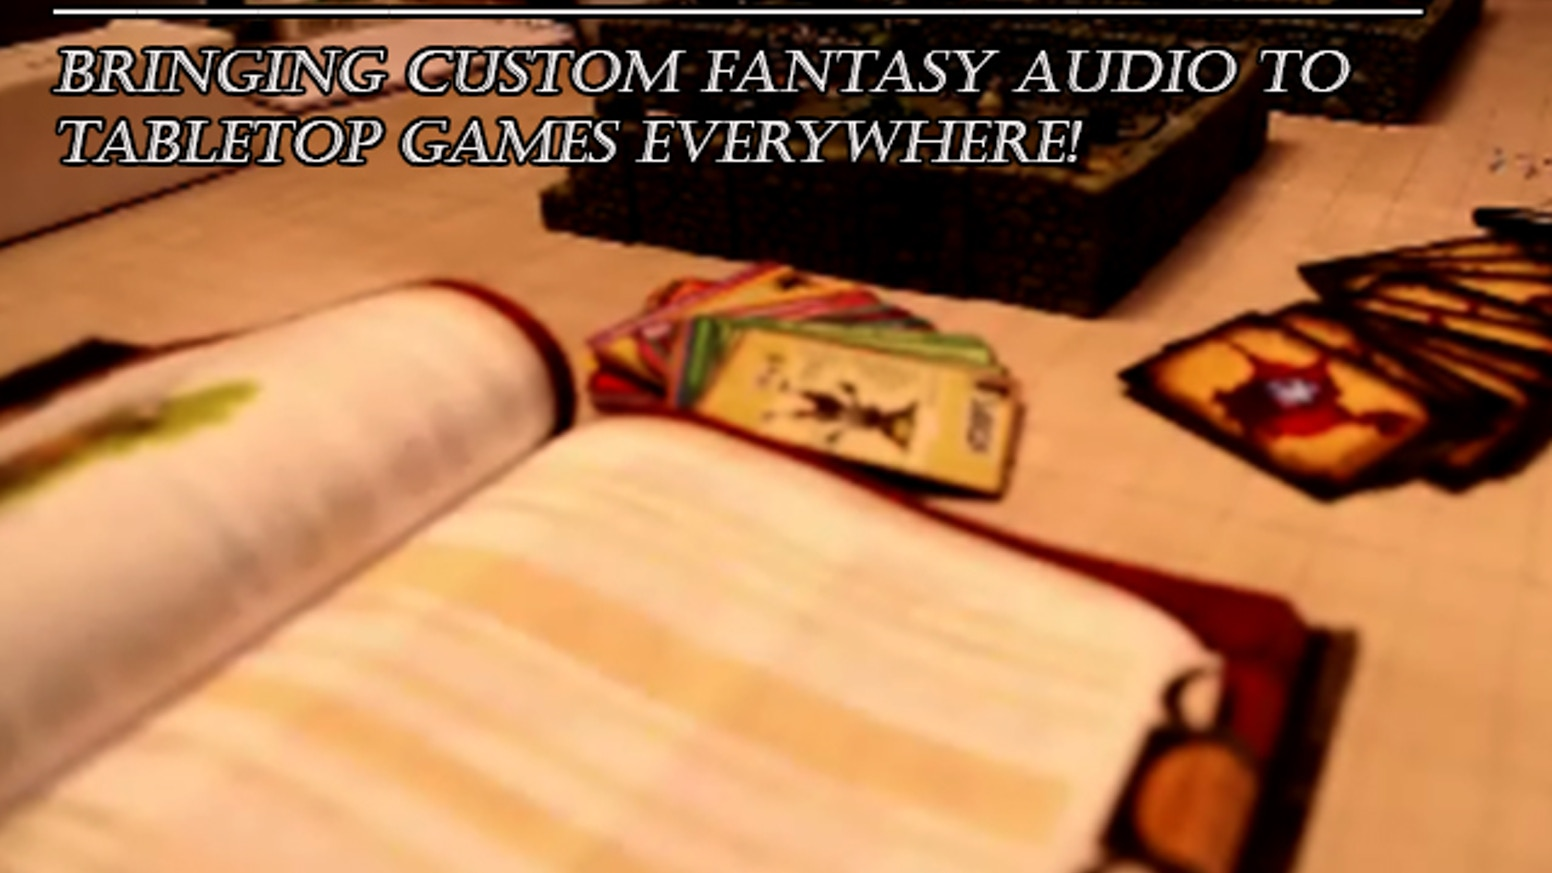 Enhance your Campaign w/ 500+ Downloadable Fantasy Audio Scores built for Tabletop RPGs. Create your own custom scores! BattleBards. Community Driven. Kickstarter Funded. NOW LIVE at BattleBards.com